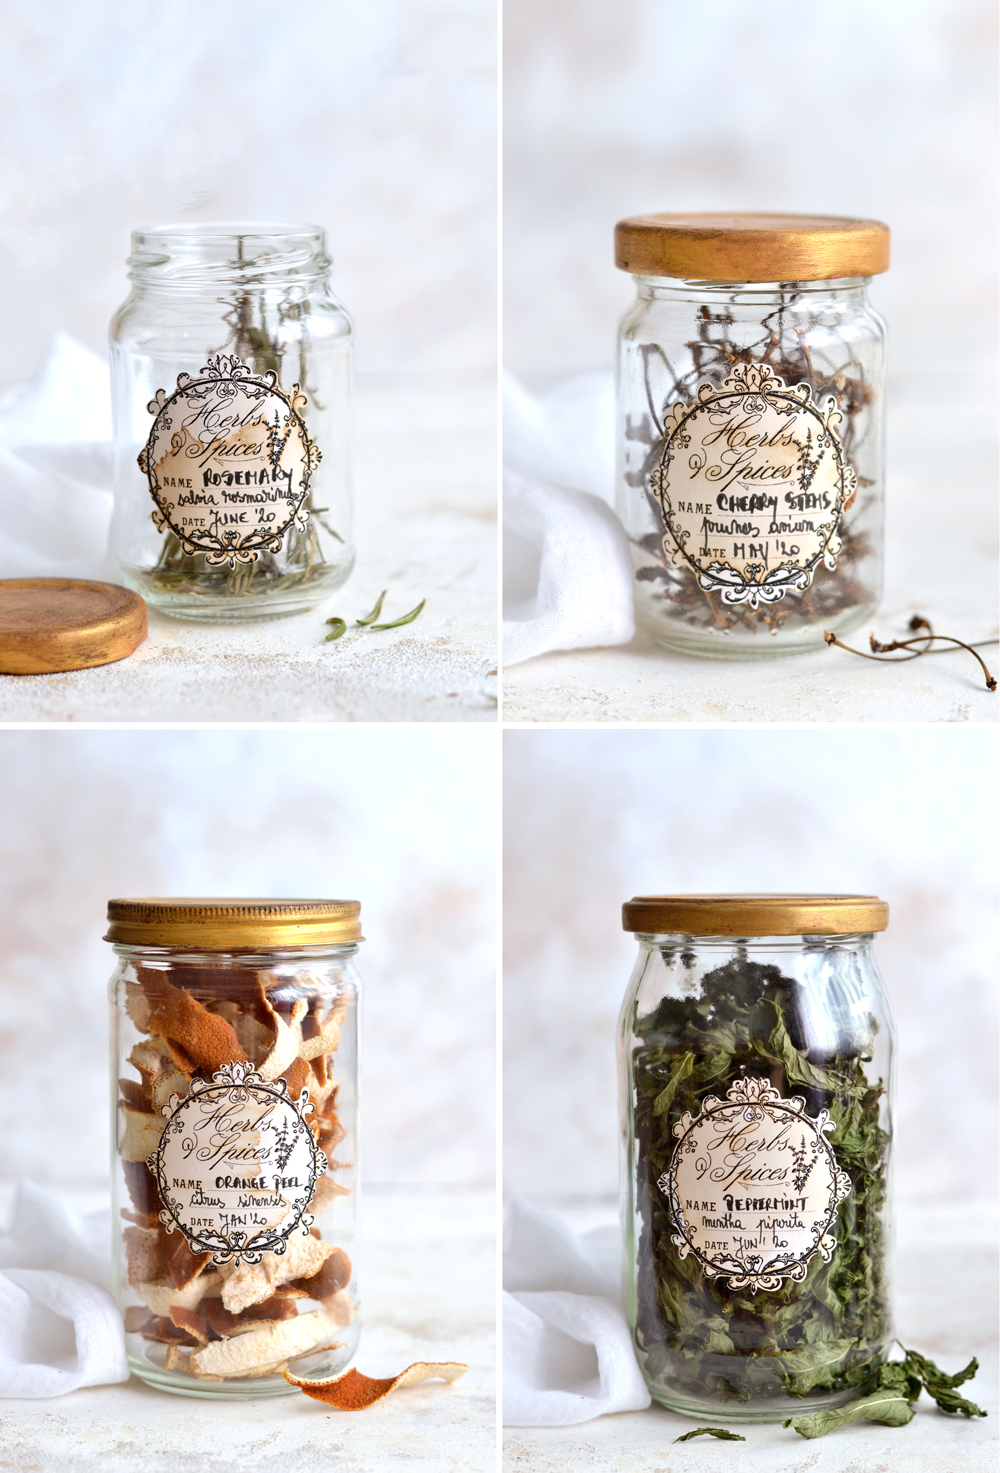 DIY Herbs and Spices Apothecary Jars